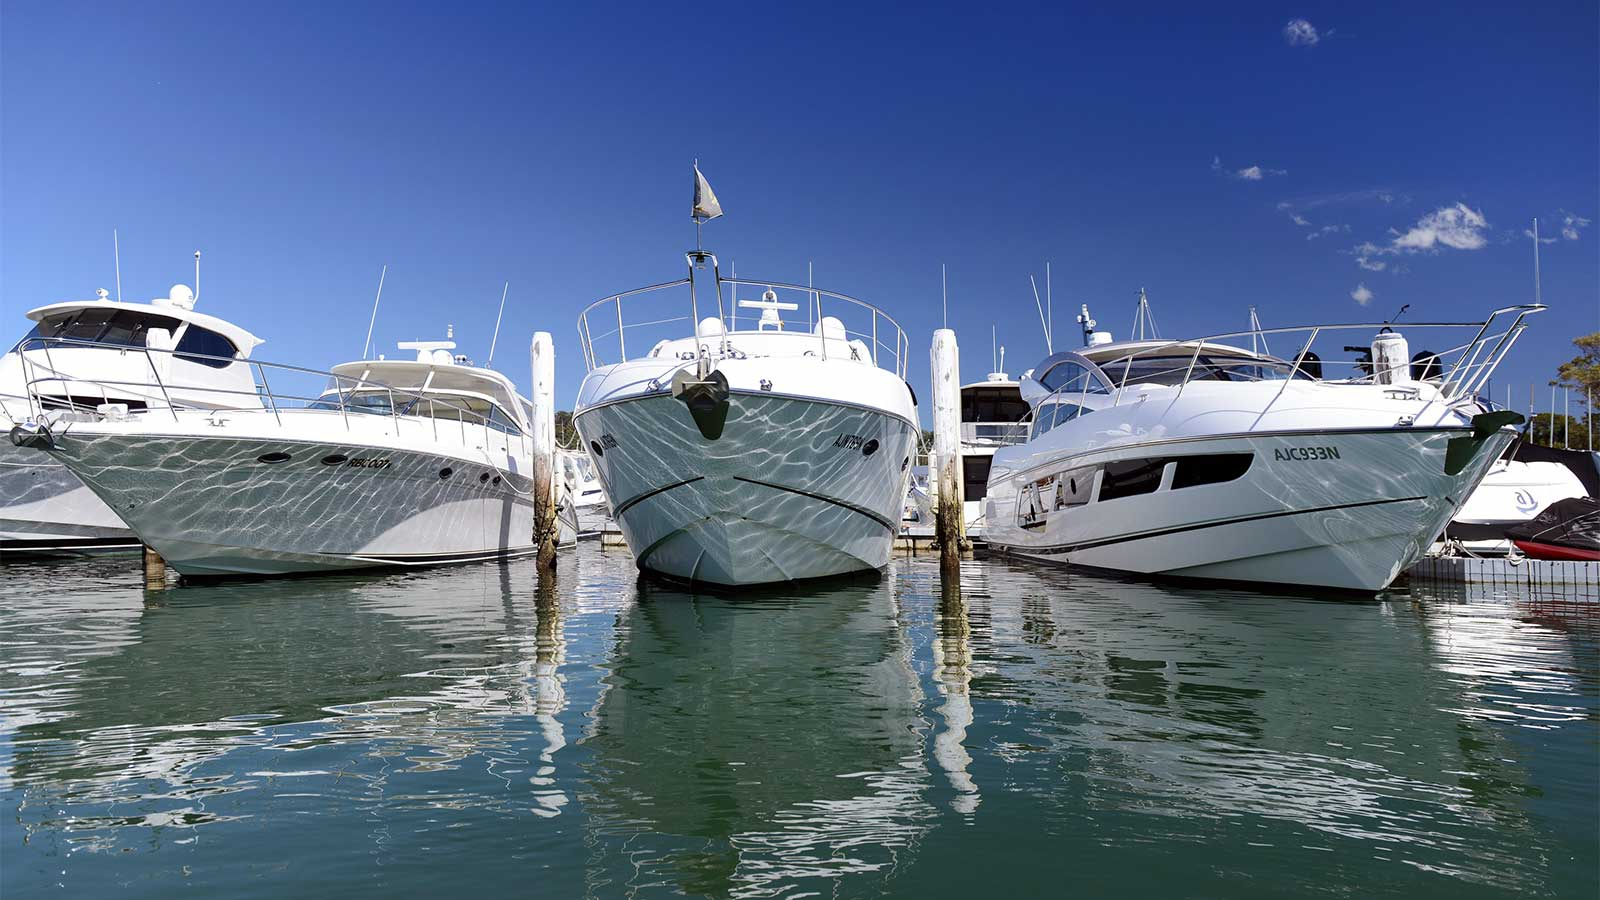 Boat Broker Sydney Vessel Management is based at Ferguson's Marina in Mosman, Sydney